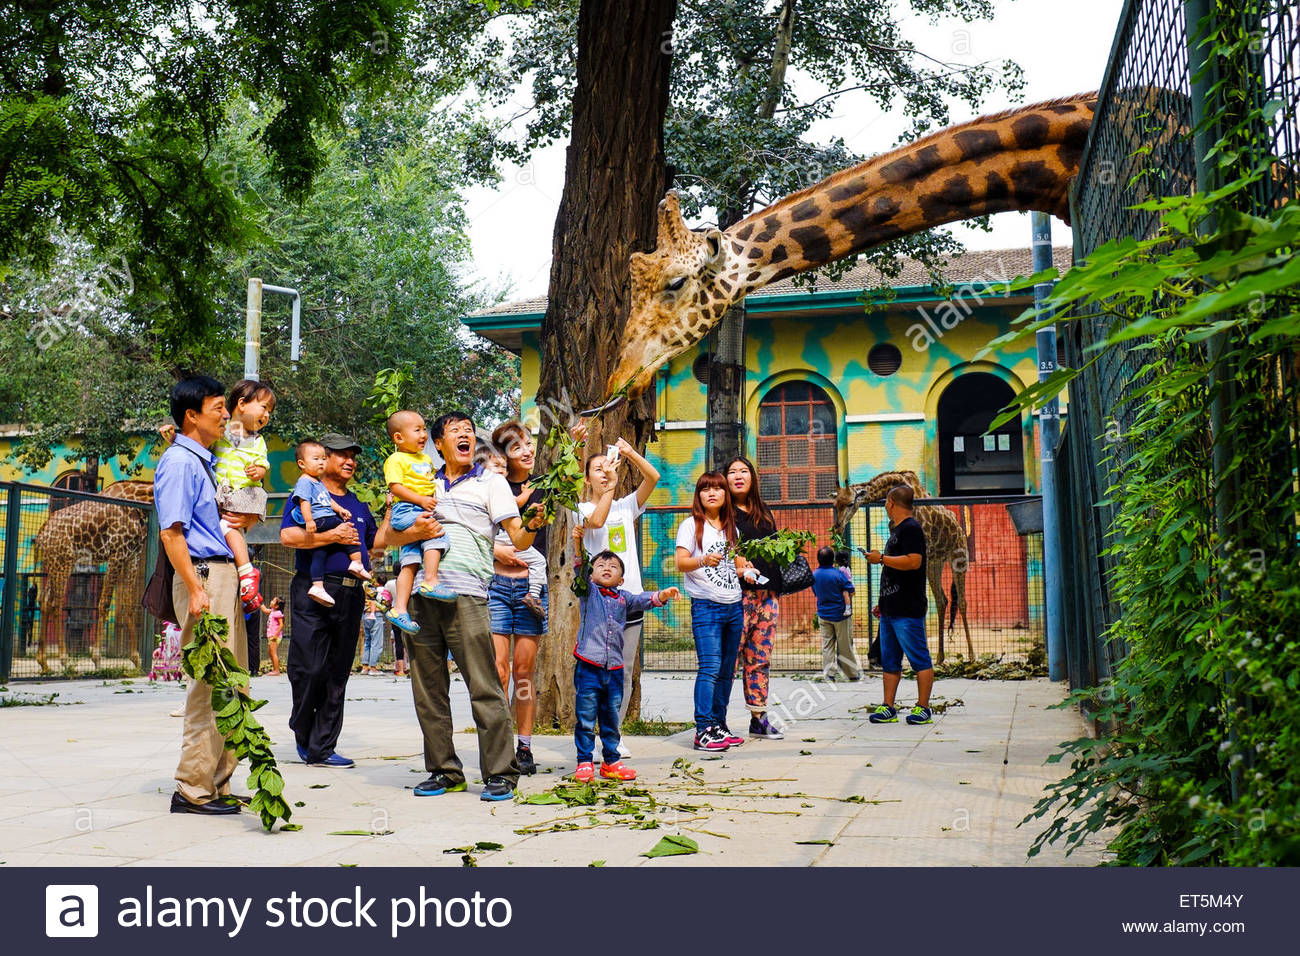 Feeding giraffes at Beijing Zoo - Stock Image